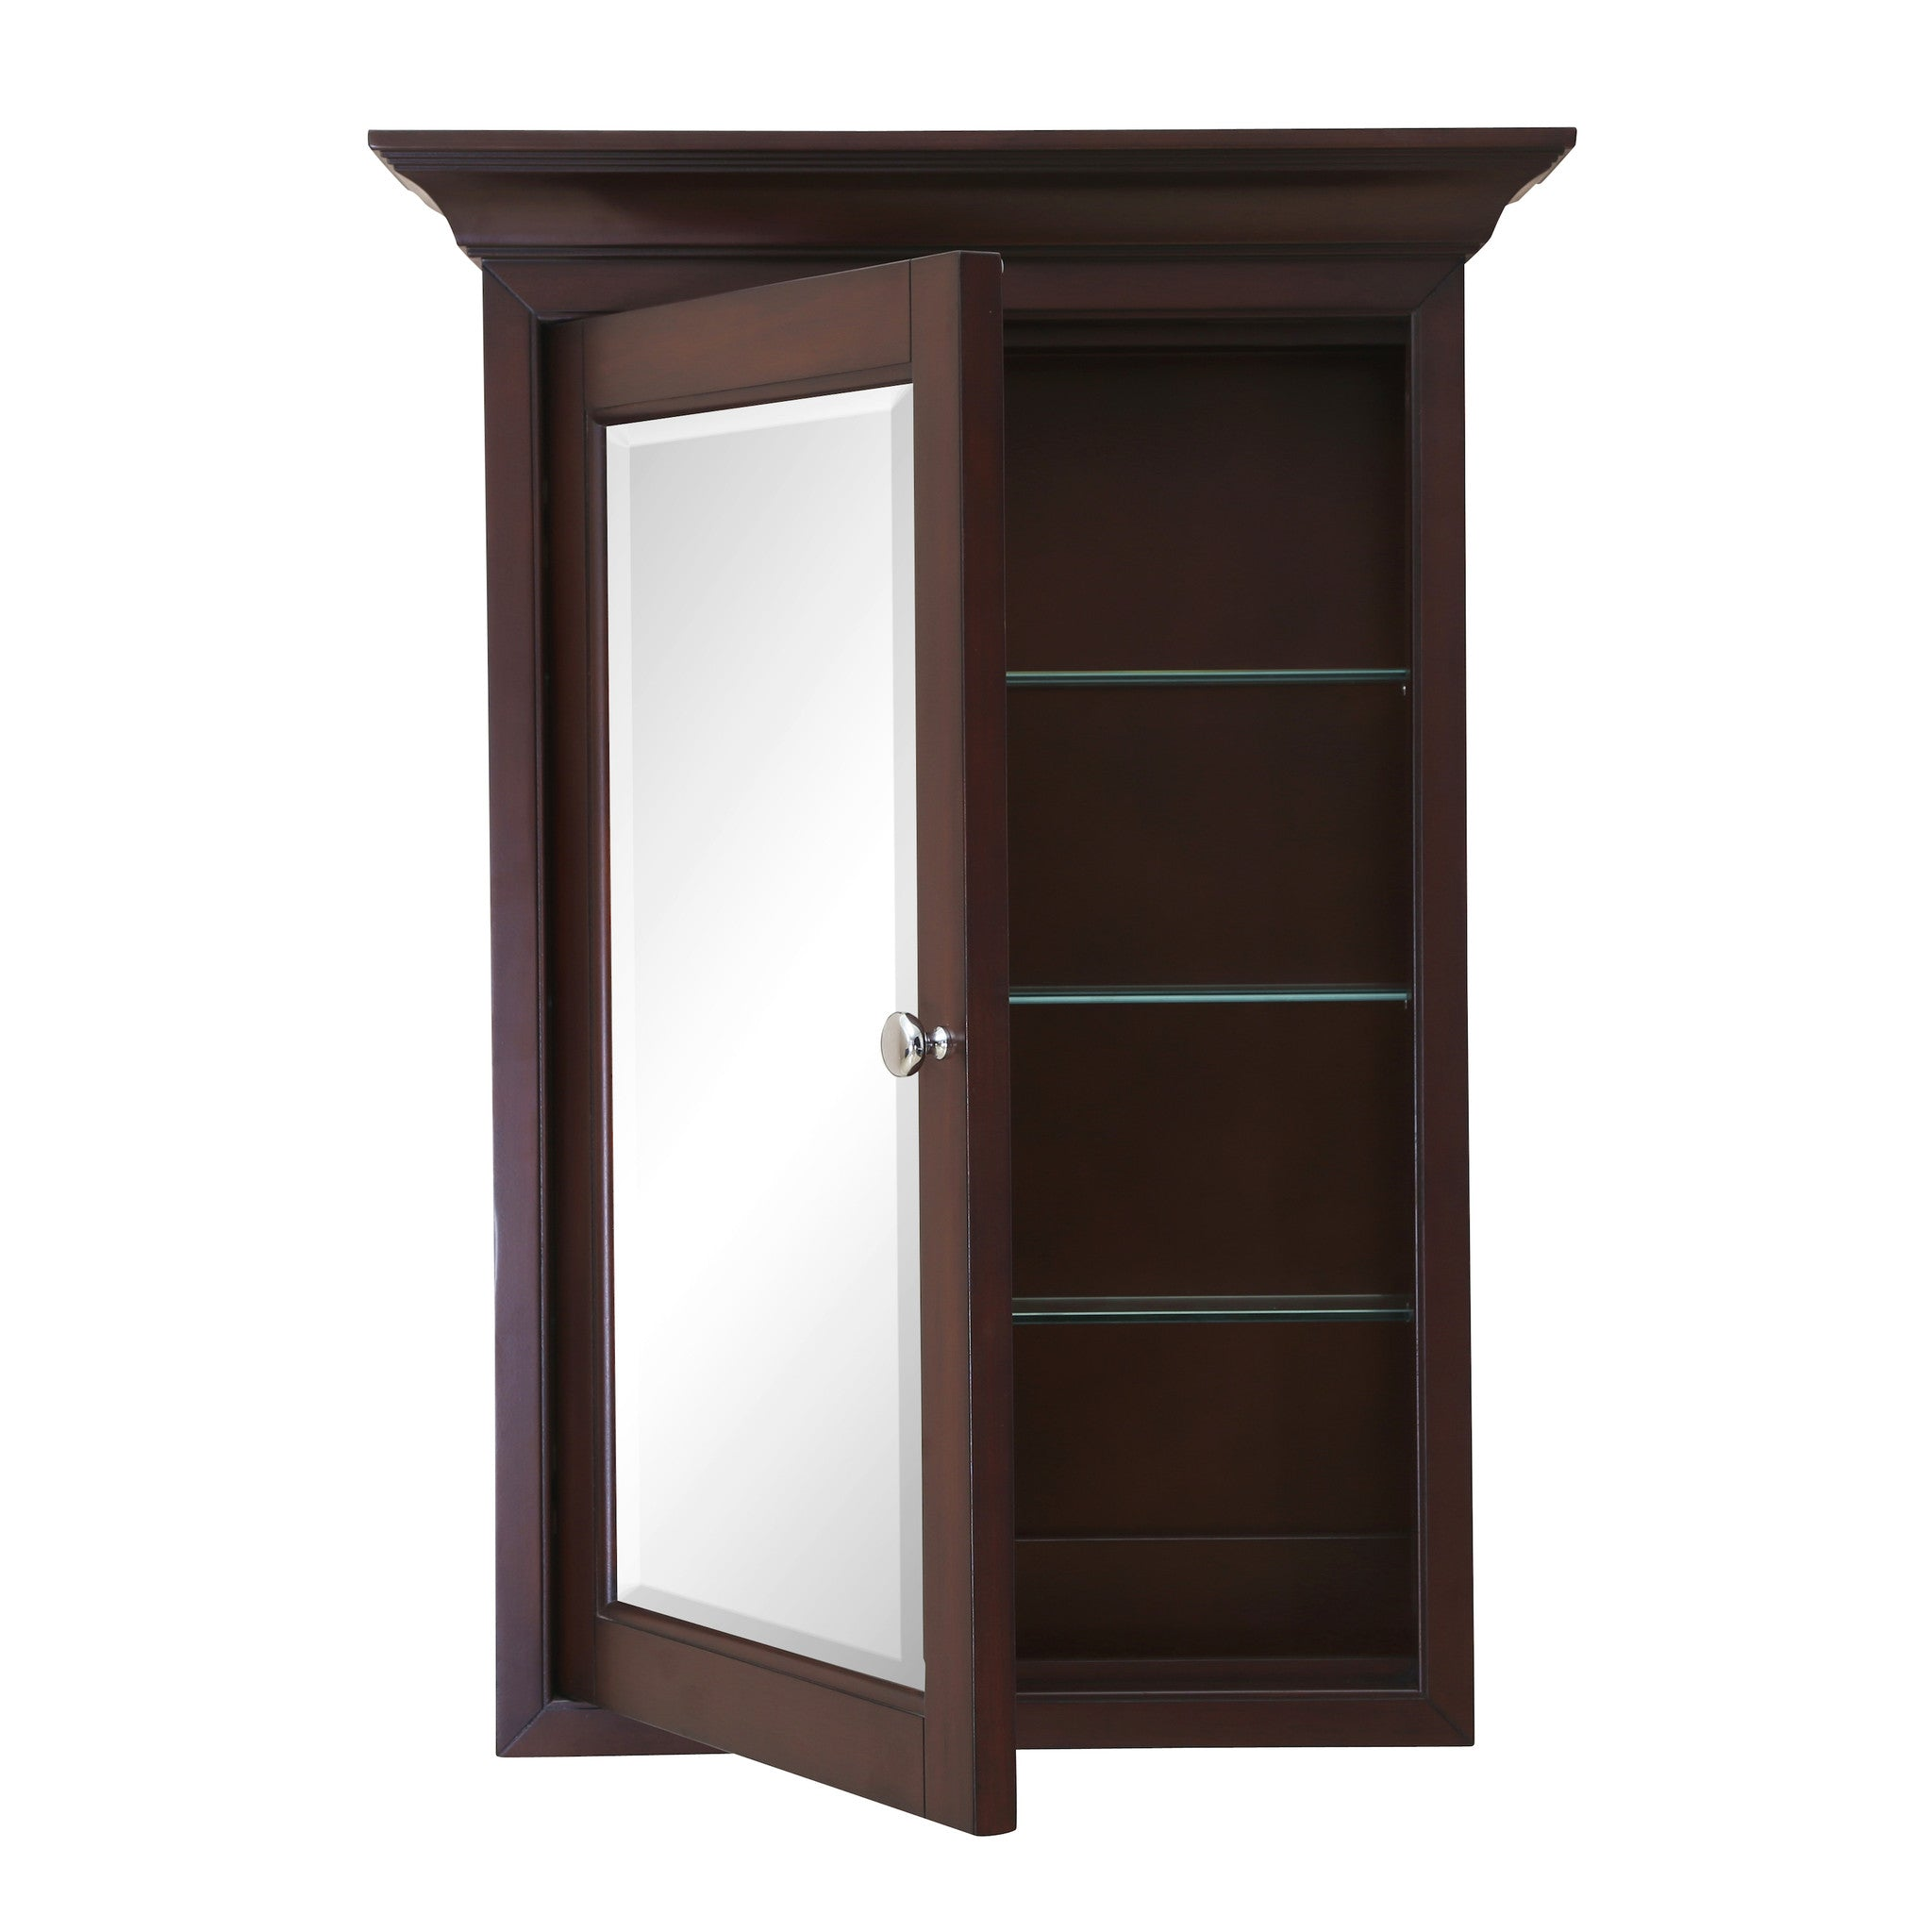 Newport wall mounted medicine cabinet chocolate Wall mounted medicine cabinet